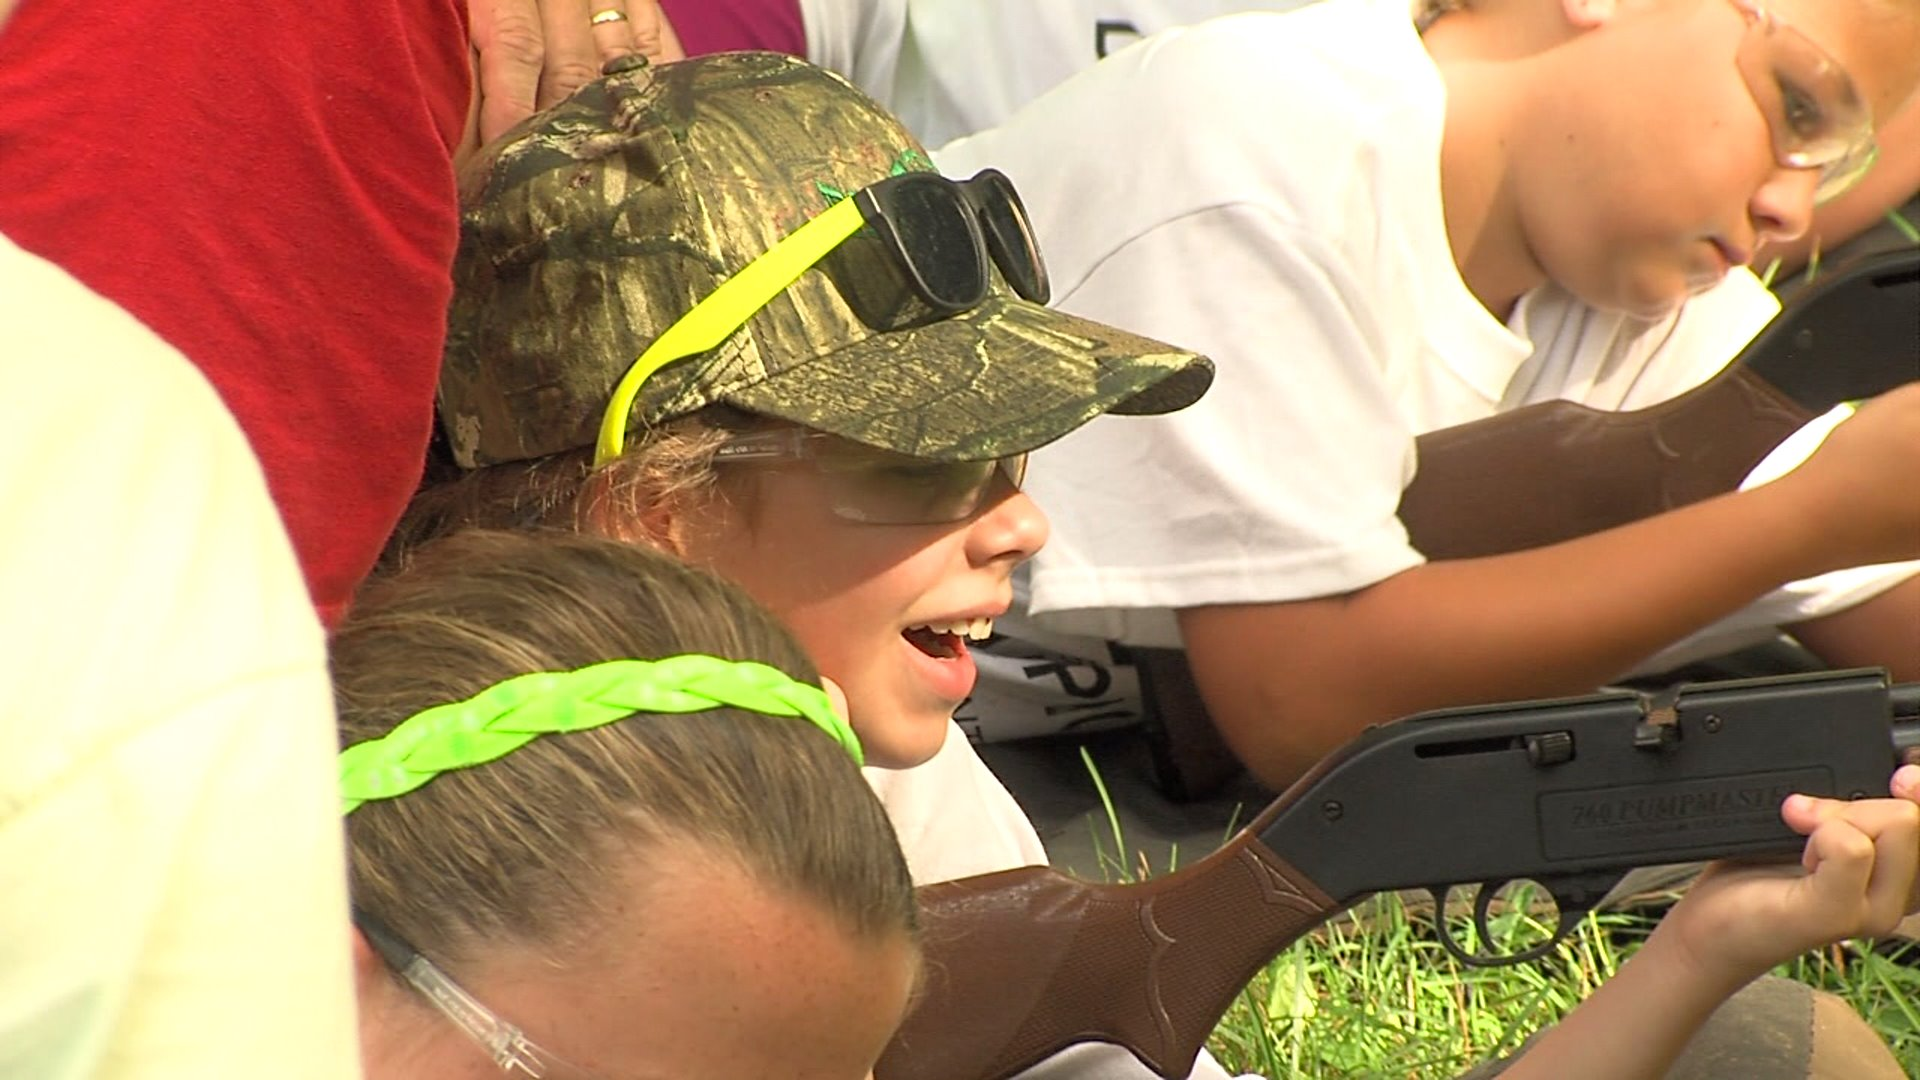 Kids Learn New Hobbies That Steer Them Clear of Drugs Through D.A.R.E. Program